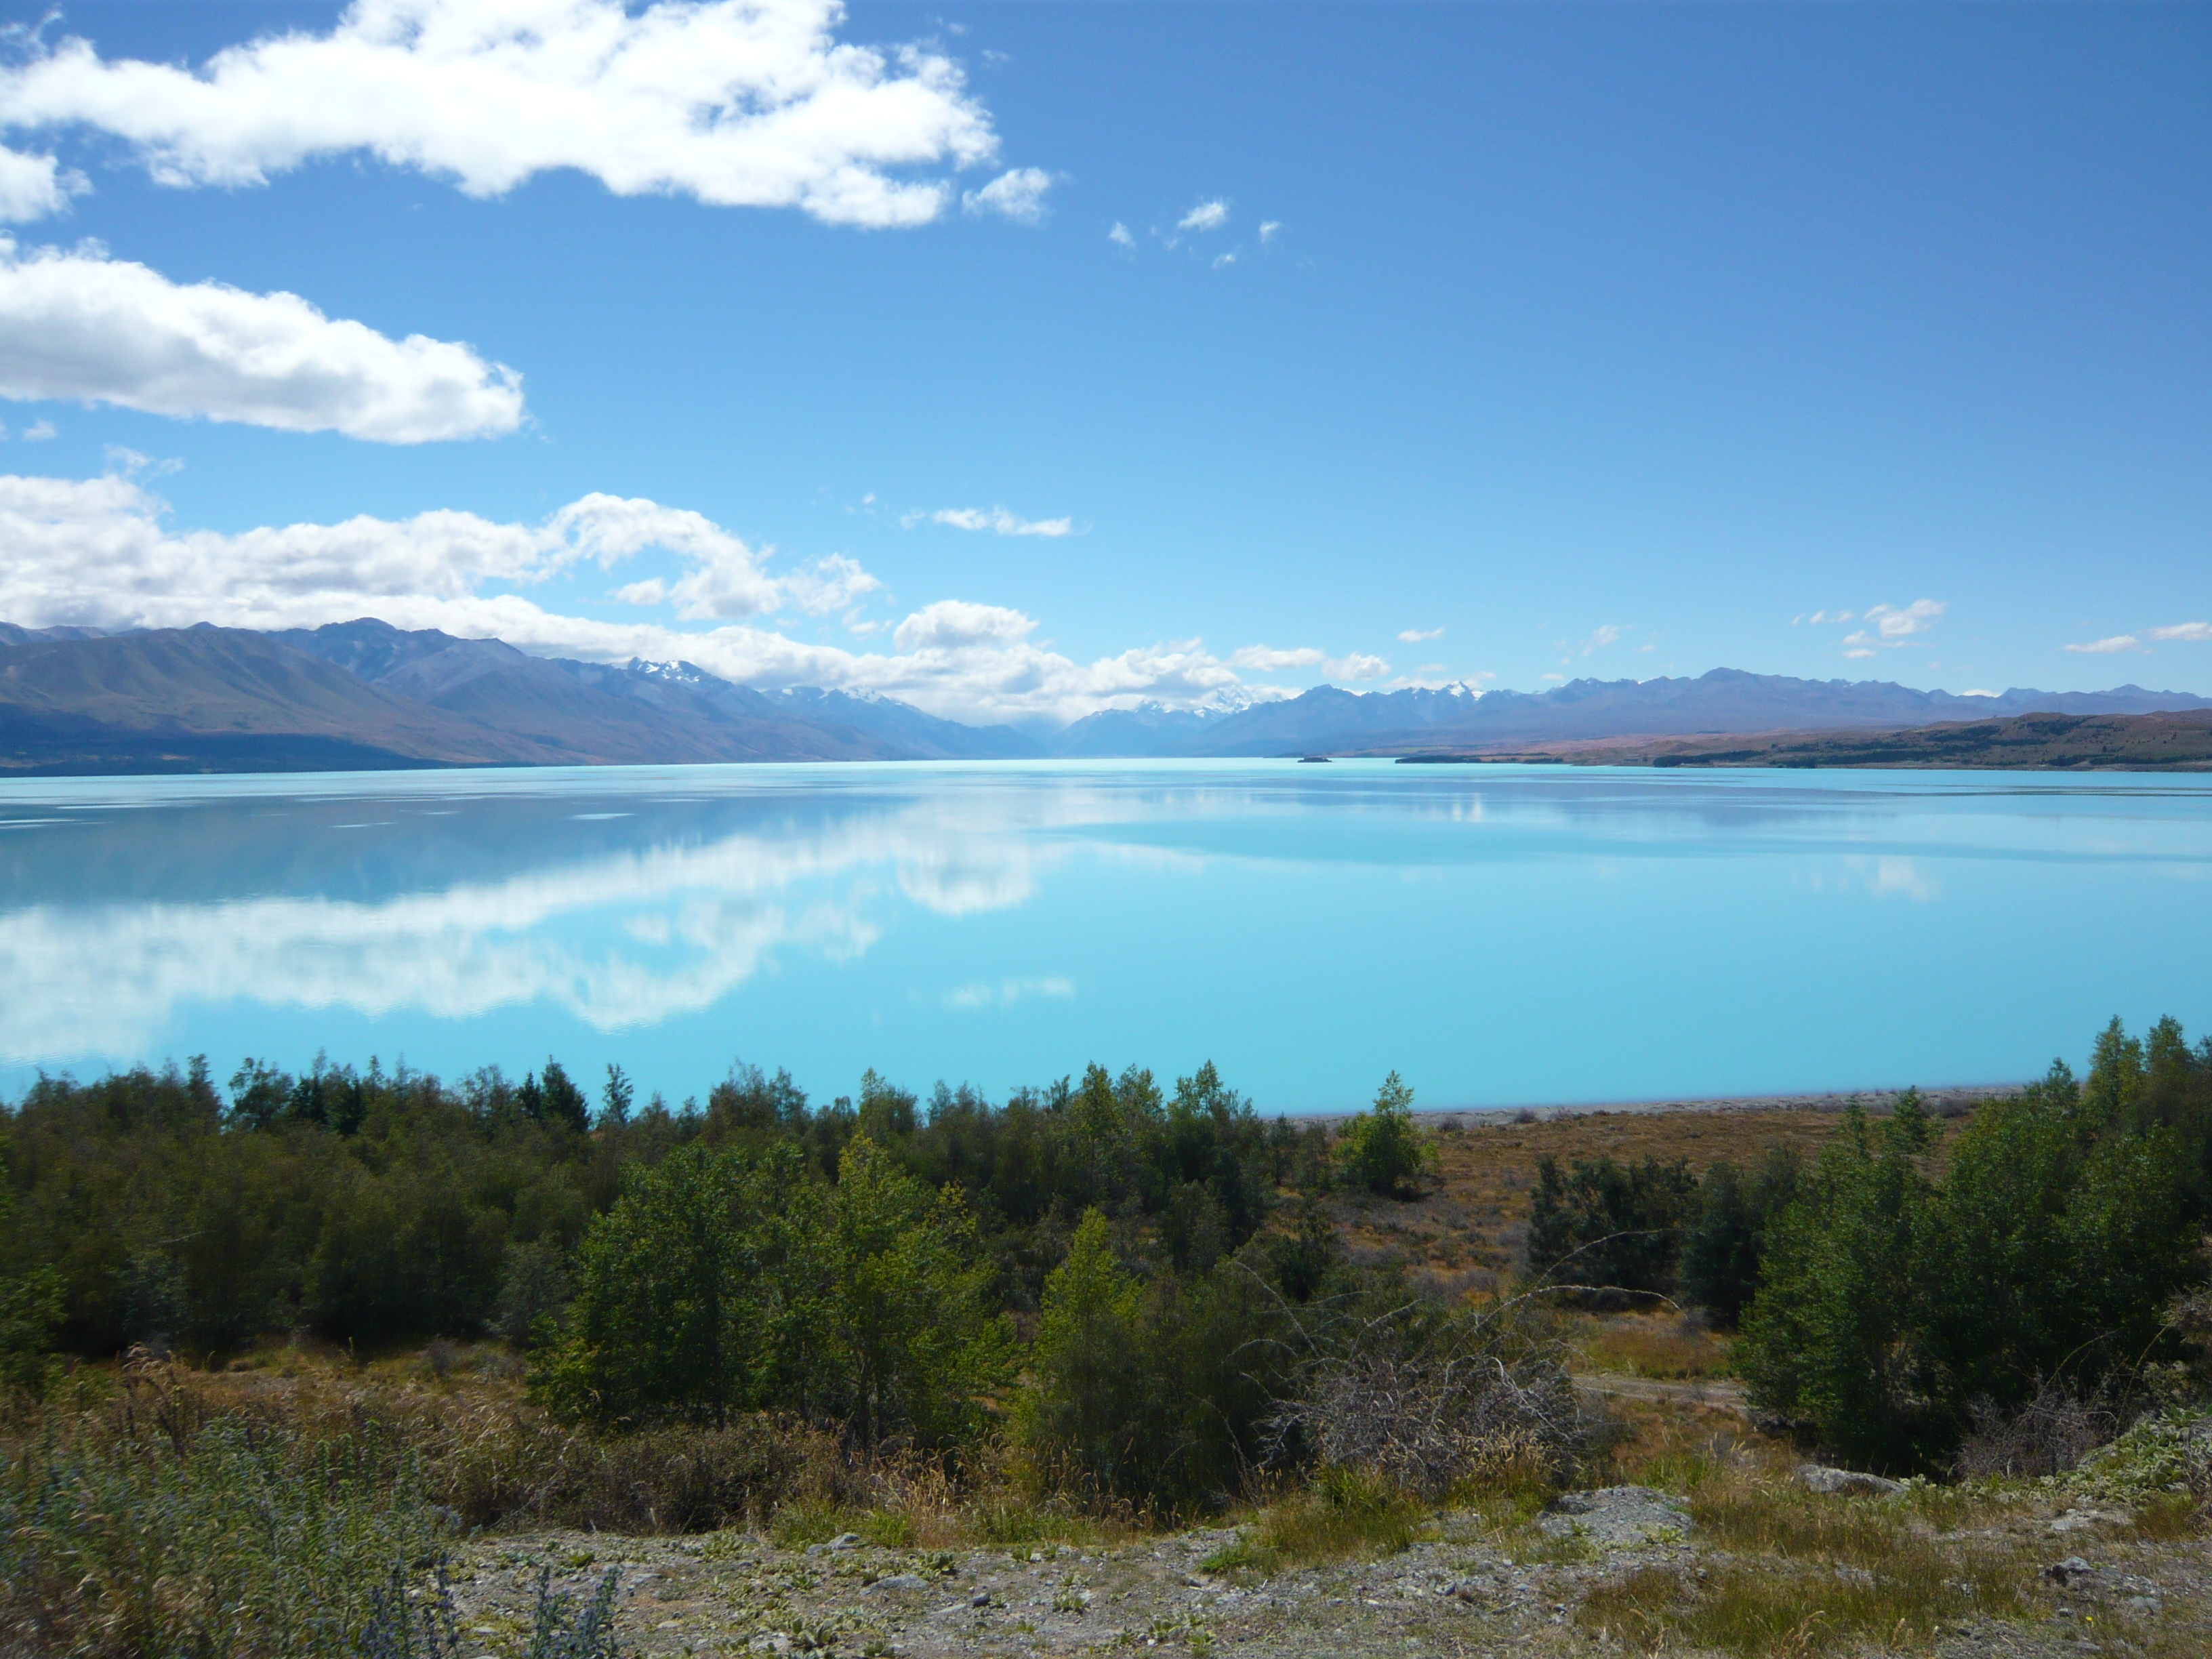 Lake Tekapo New Zealand  city pictures gallery : Fitxer:Lake Tekapo 2, New Zealand Viquipèdia, l'enciclopèdia ...